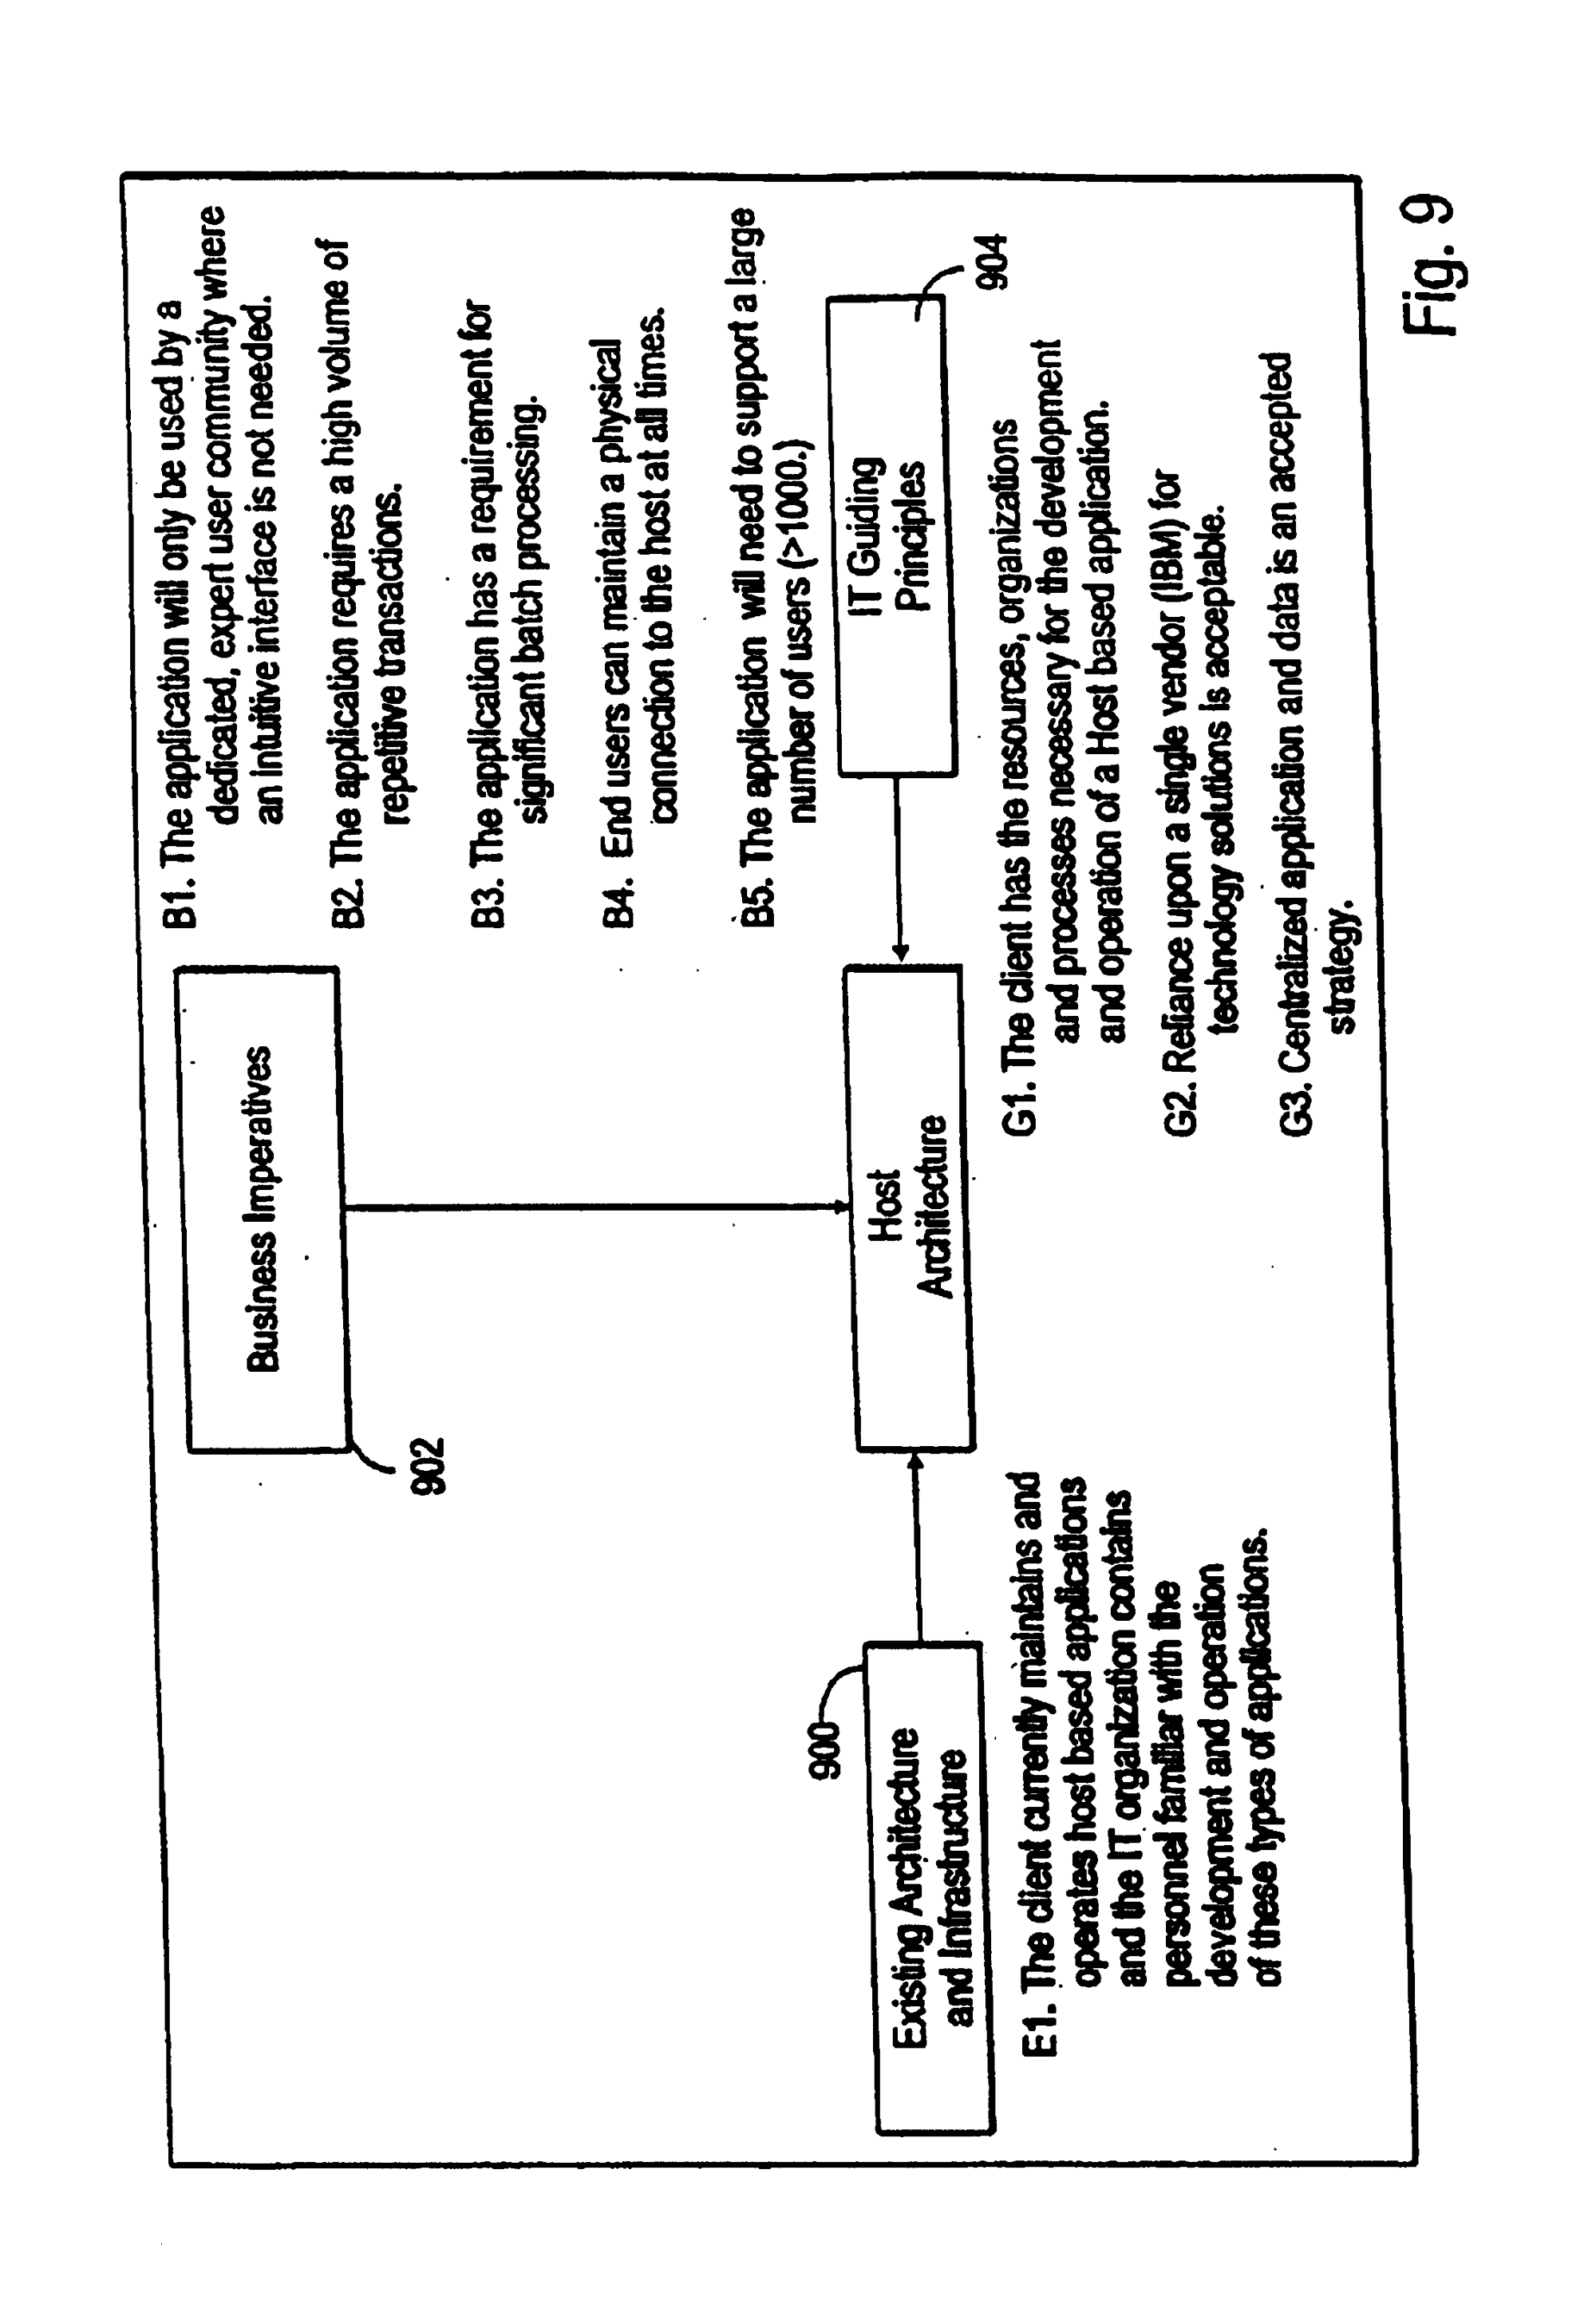 hight resolution of boeing 777 wiring diagram wiring database library